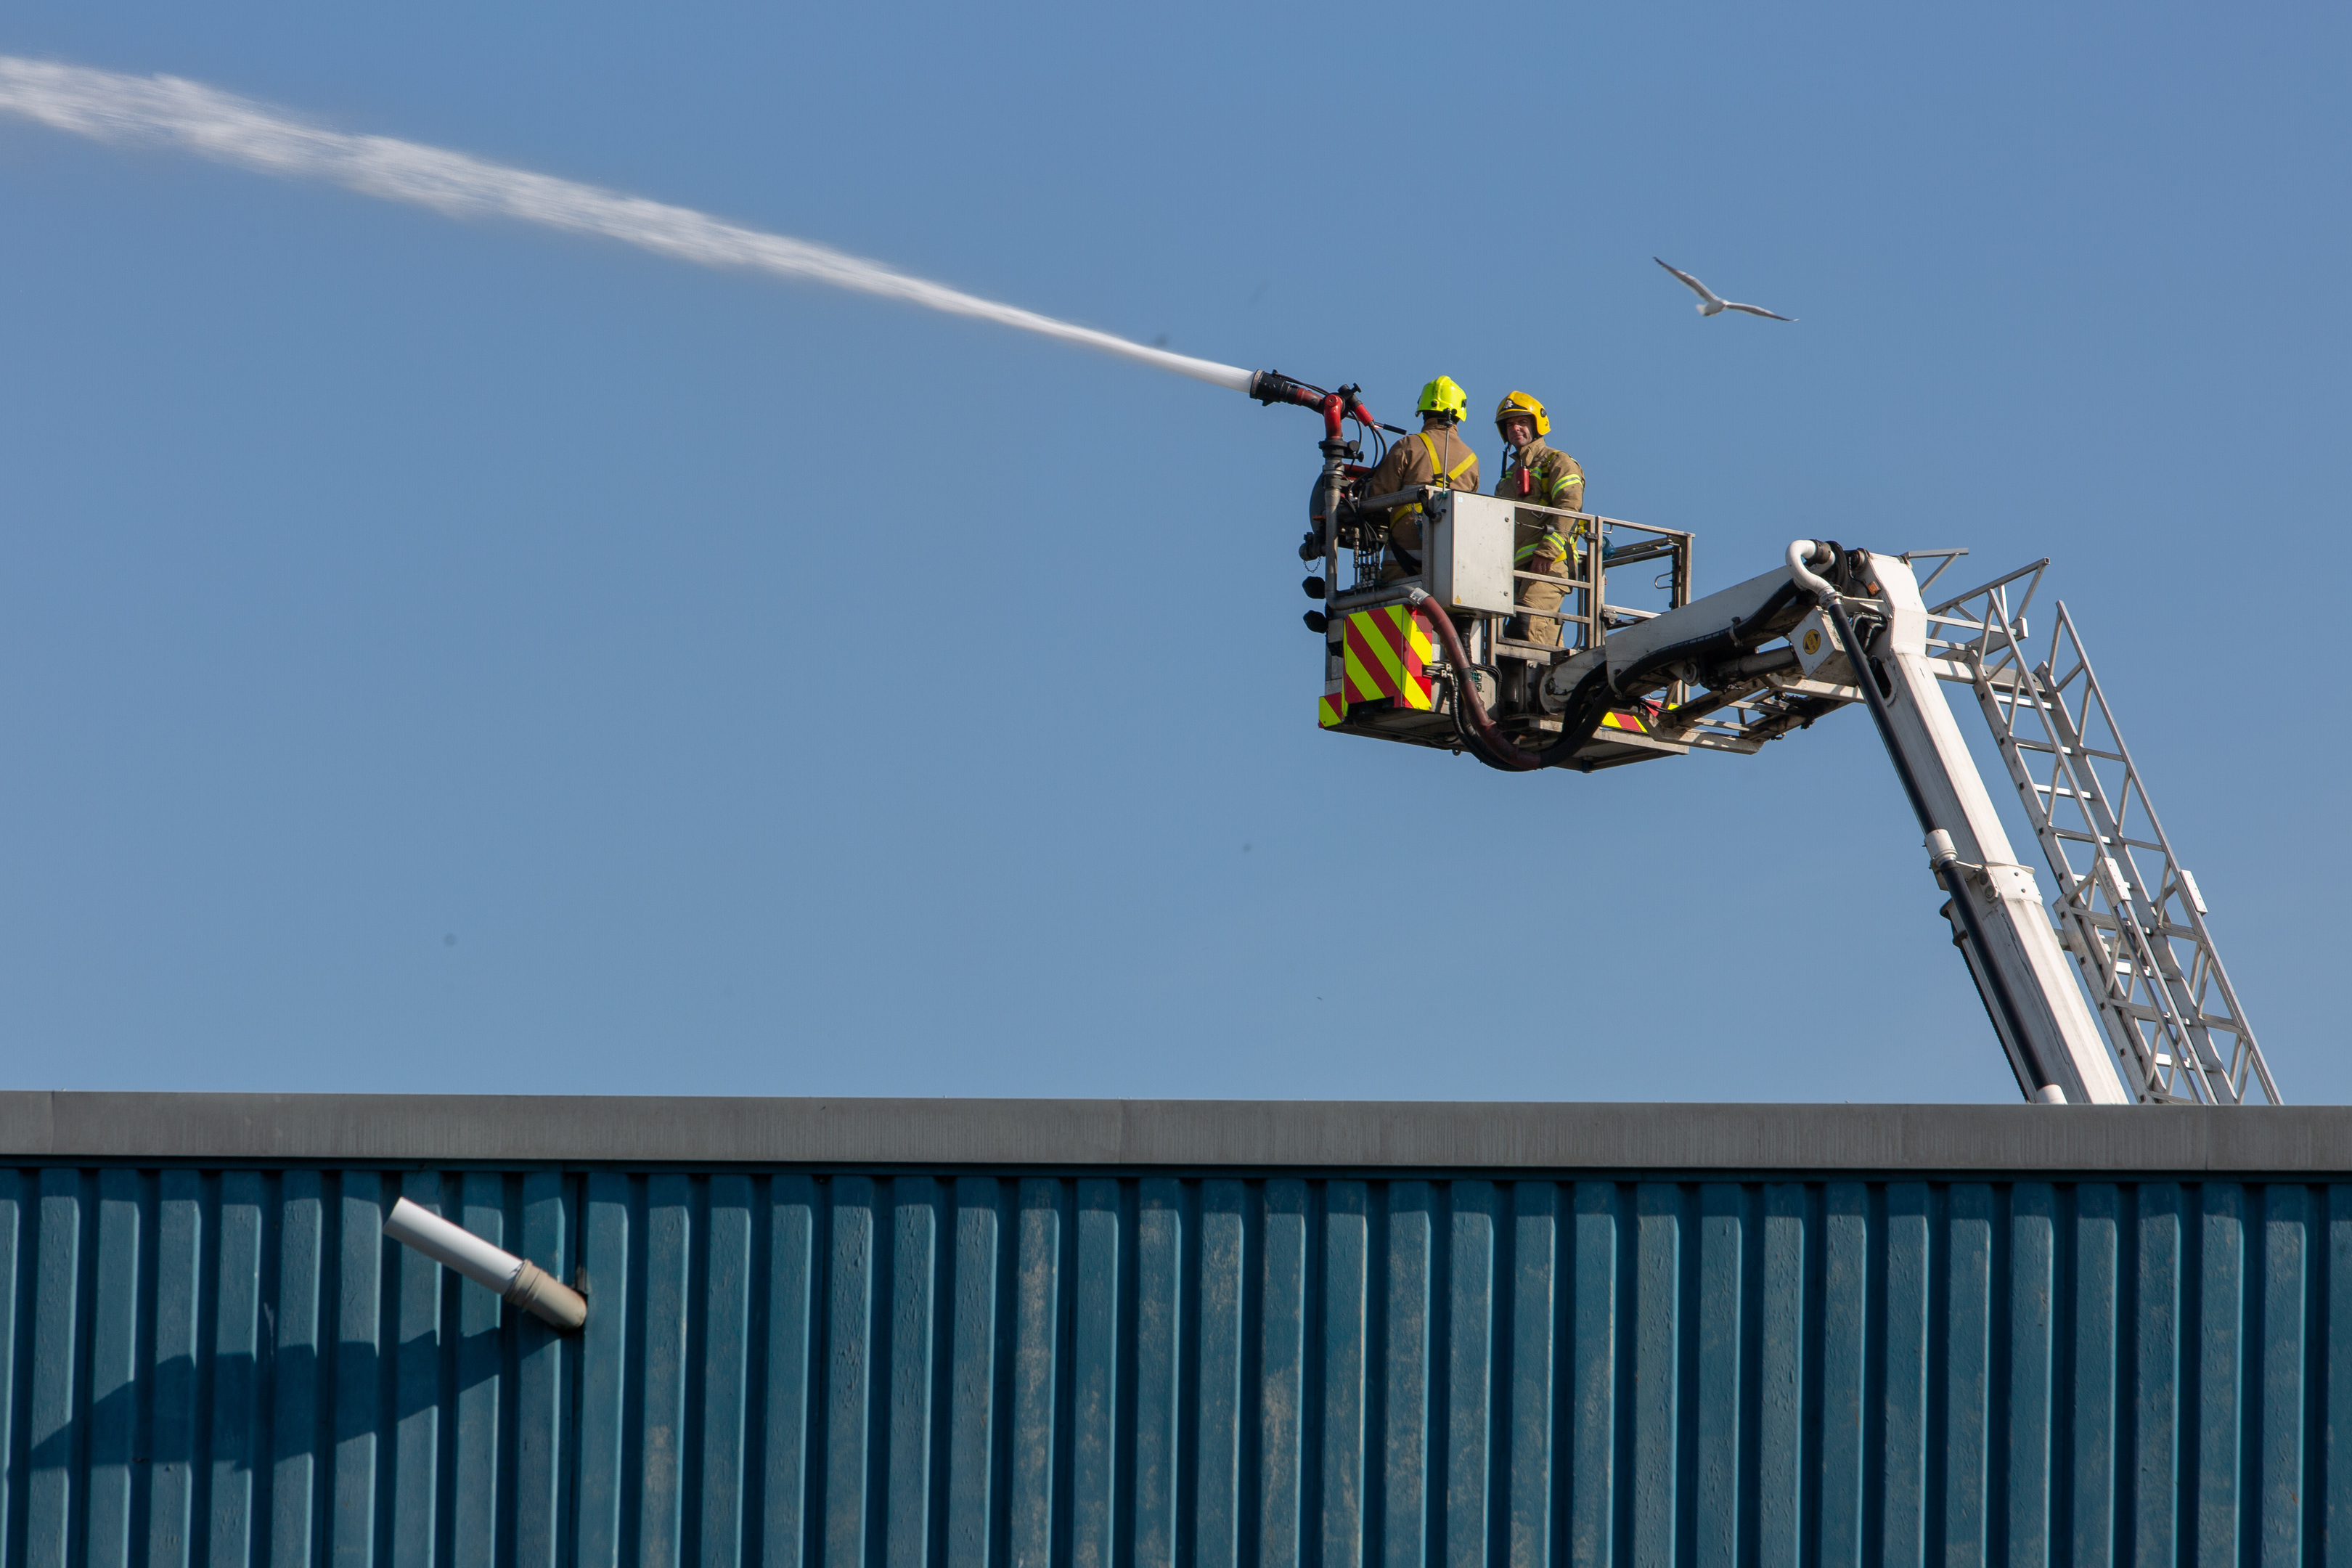 Fire damage and fire fighters on scene at Southfield Industrial Estate.